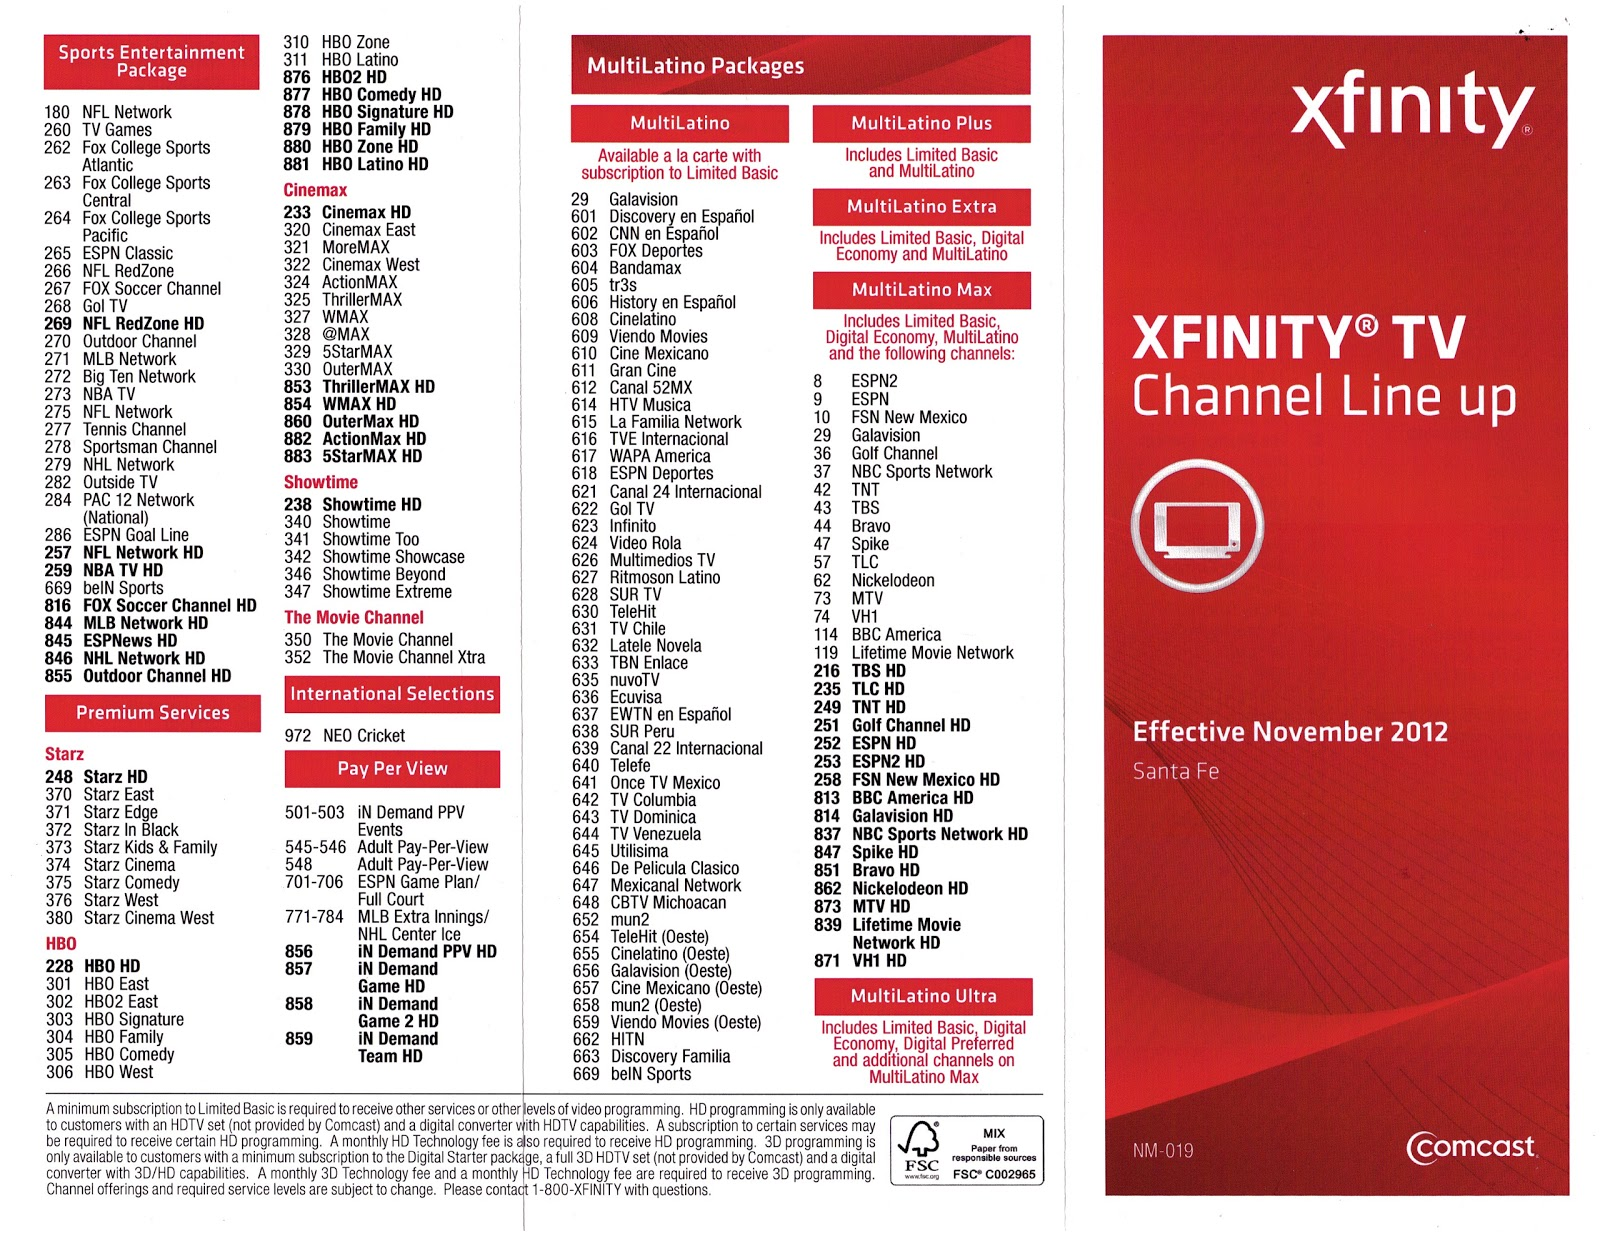 image regarding Printable Directv Channel Lineup identified as Printable Xfinity High definition Channel Marketing consultant Legionella Likelihood